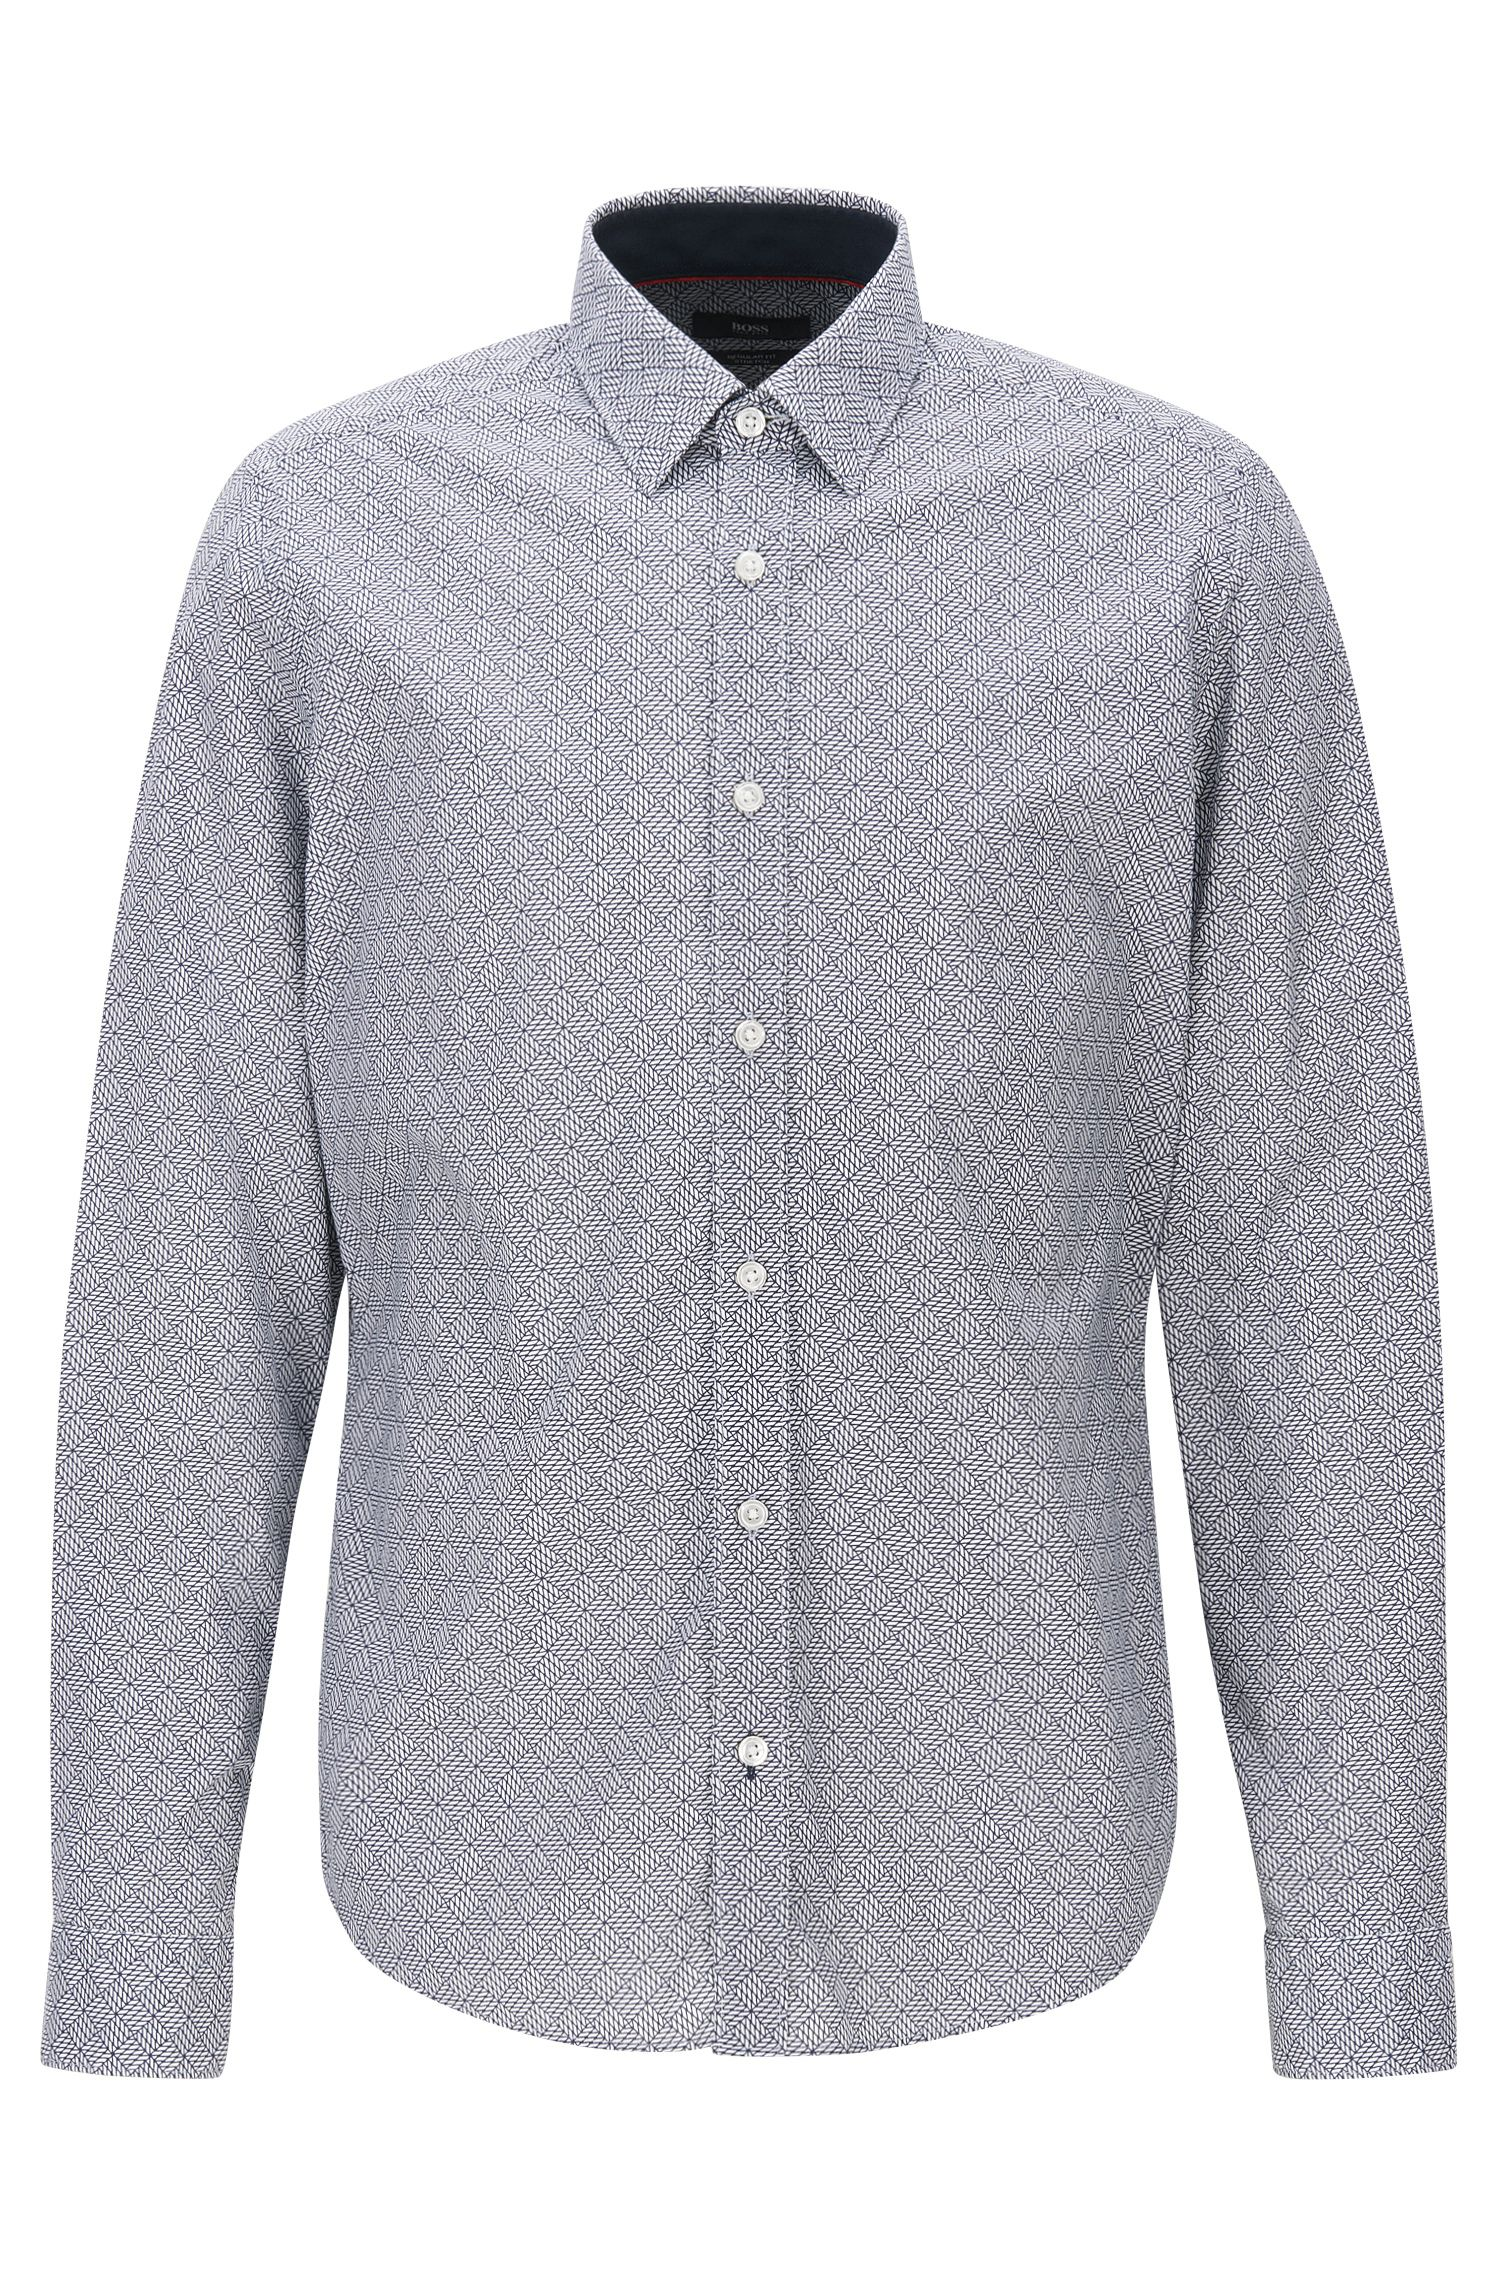 Regular-fit shirt in stretch poplin